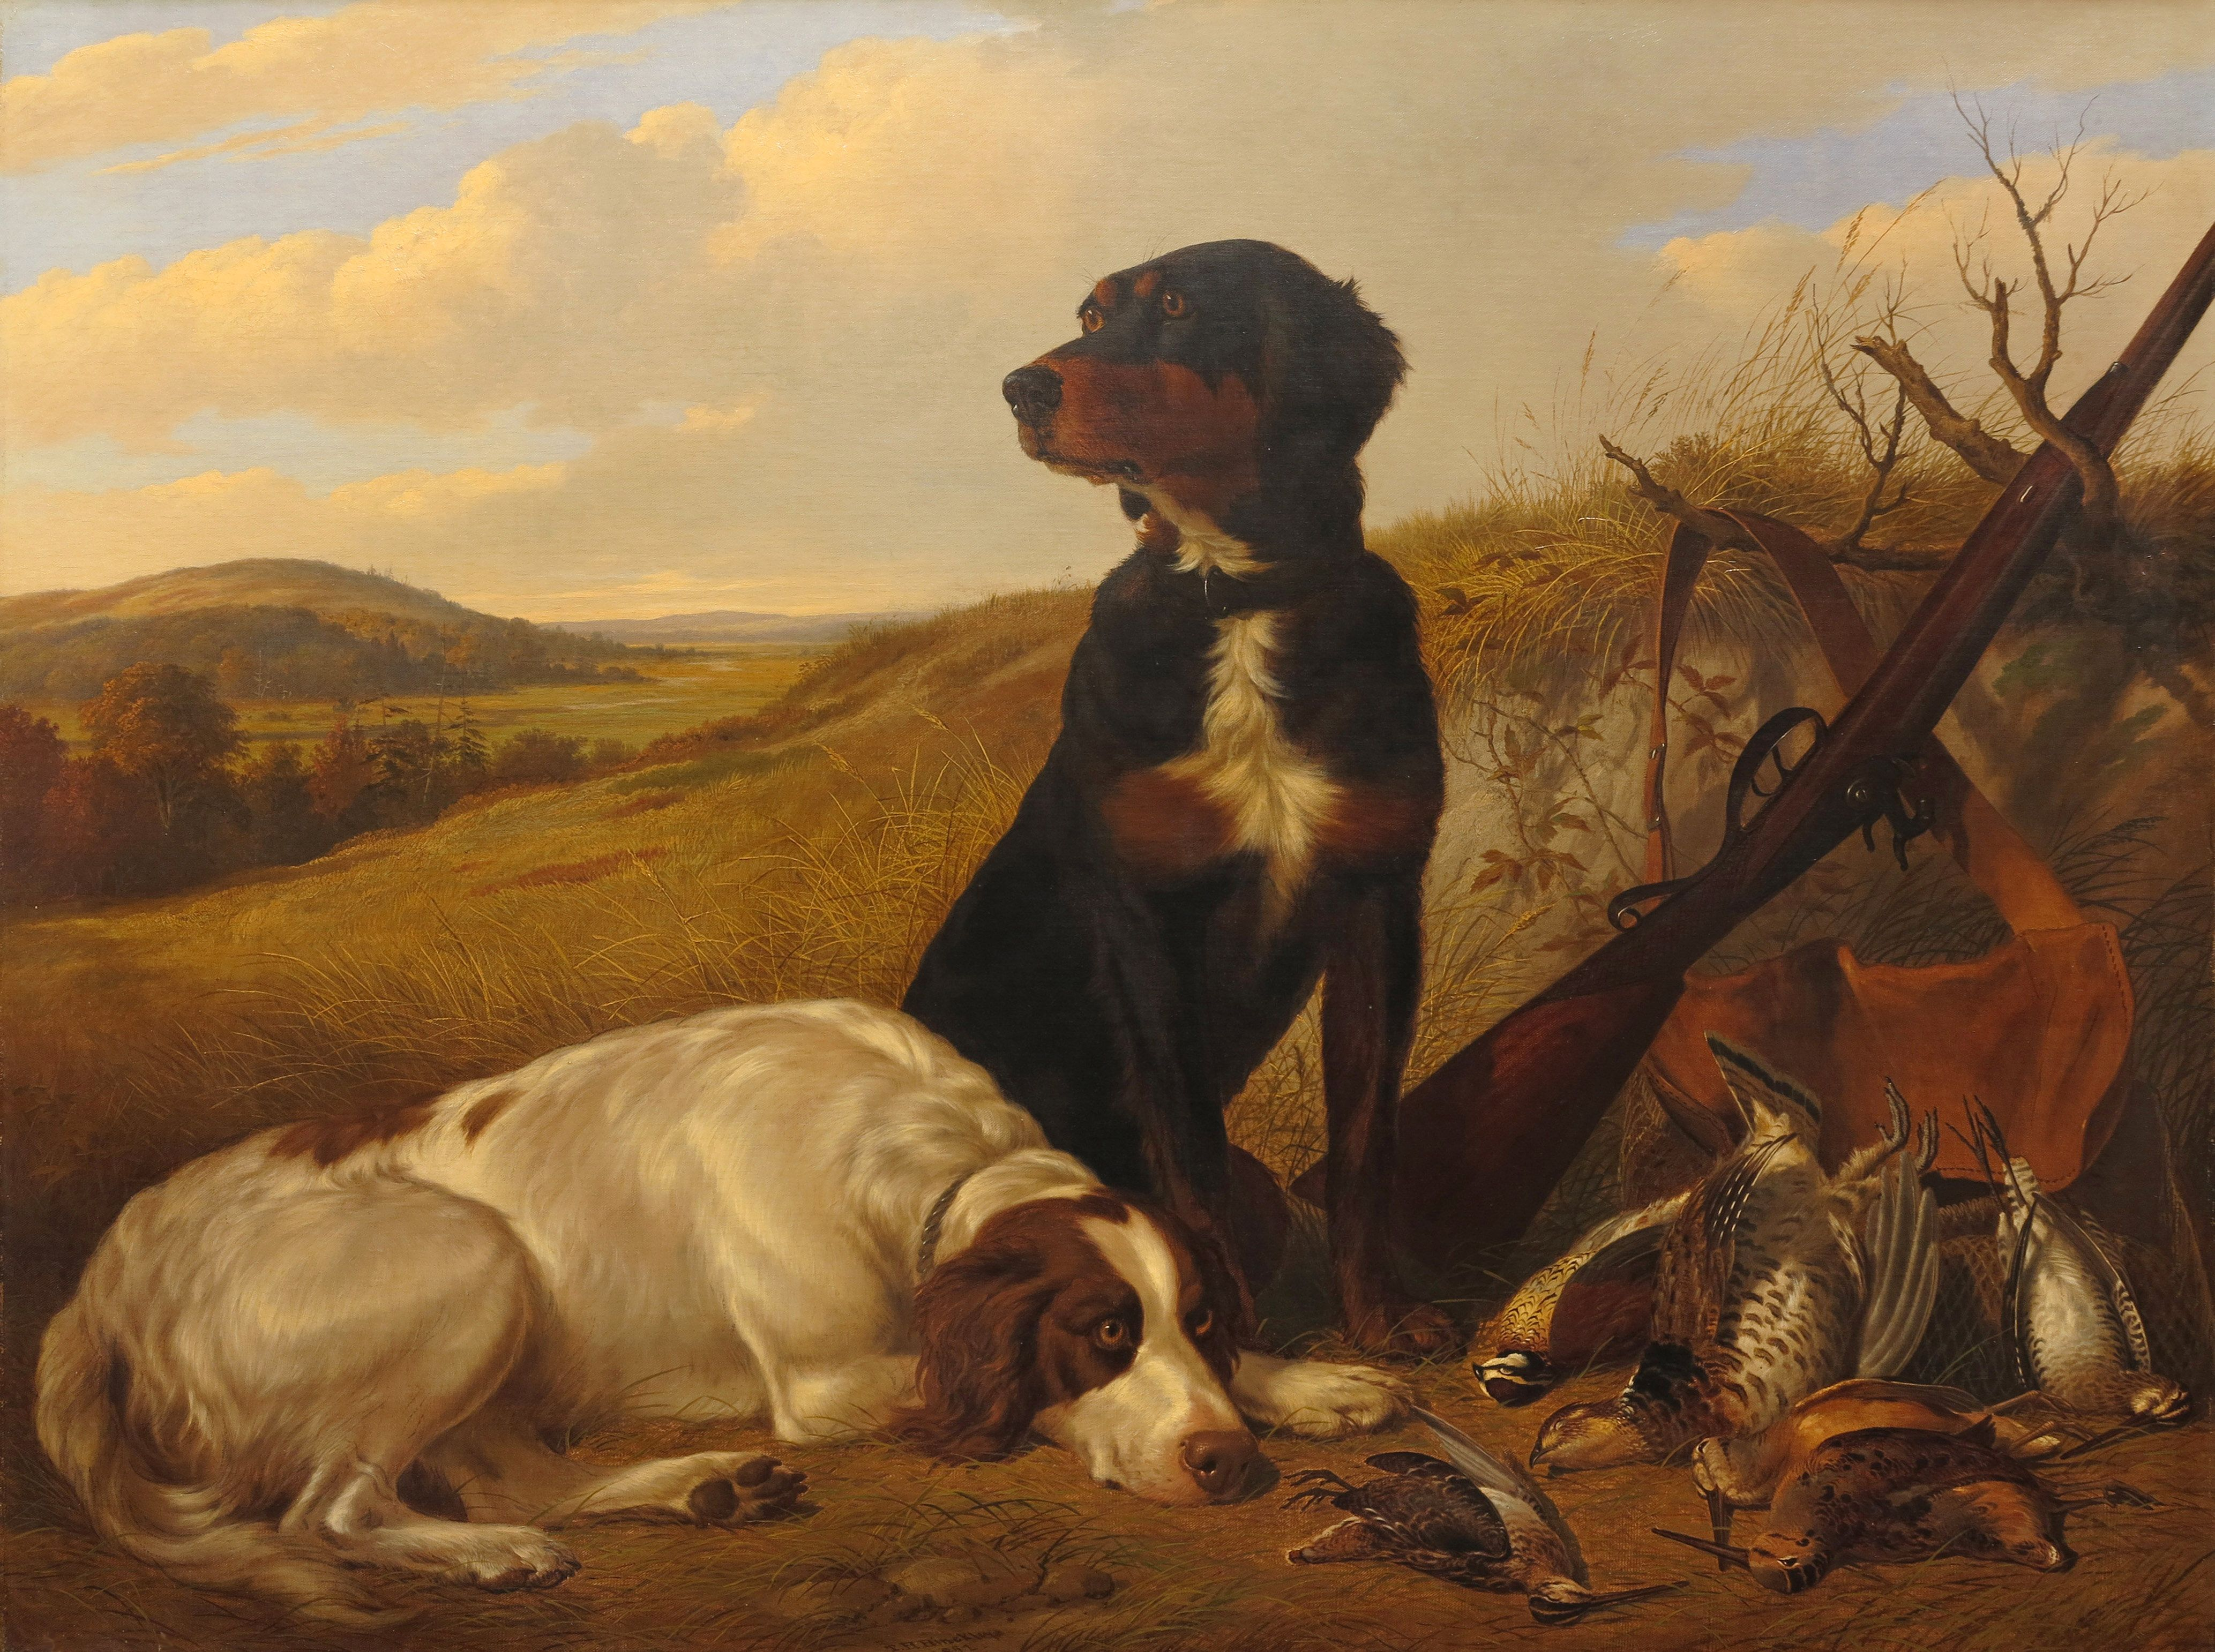 Thomas Hewes Hinckley (American, 1813-1896), Gun Dogs with Game, 1852, oil on canvas, signed T. H. Hinckley/1852, 36 x 48 inches. Presented by Red Fox Fine Art at #IntlShow 2015